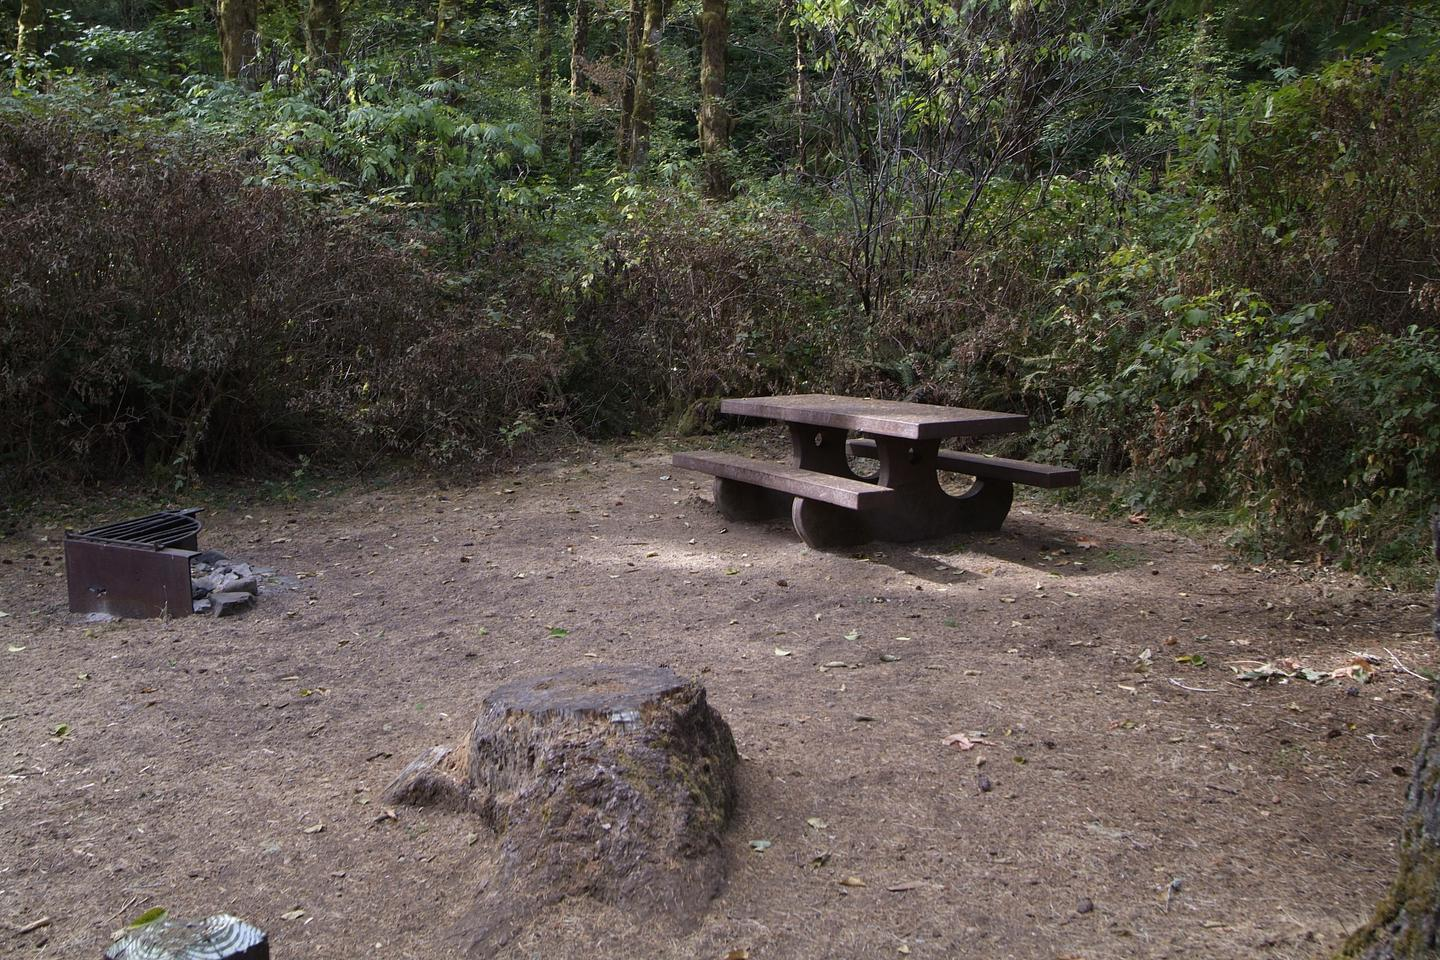 Table and fire ring for camp site 5. Camp site 5 table and fire ring.